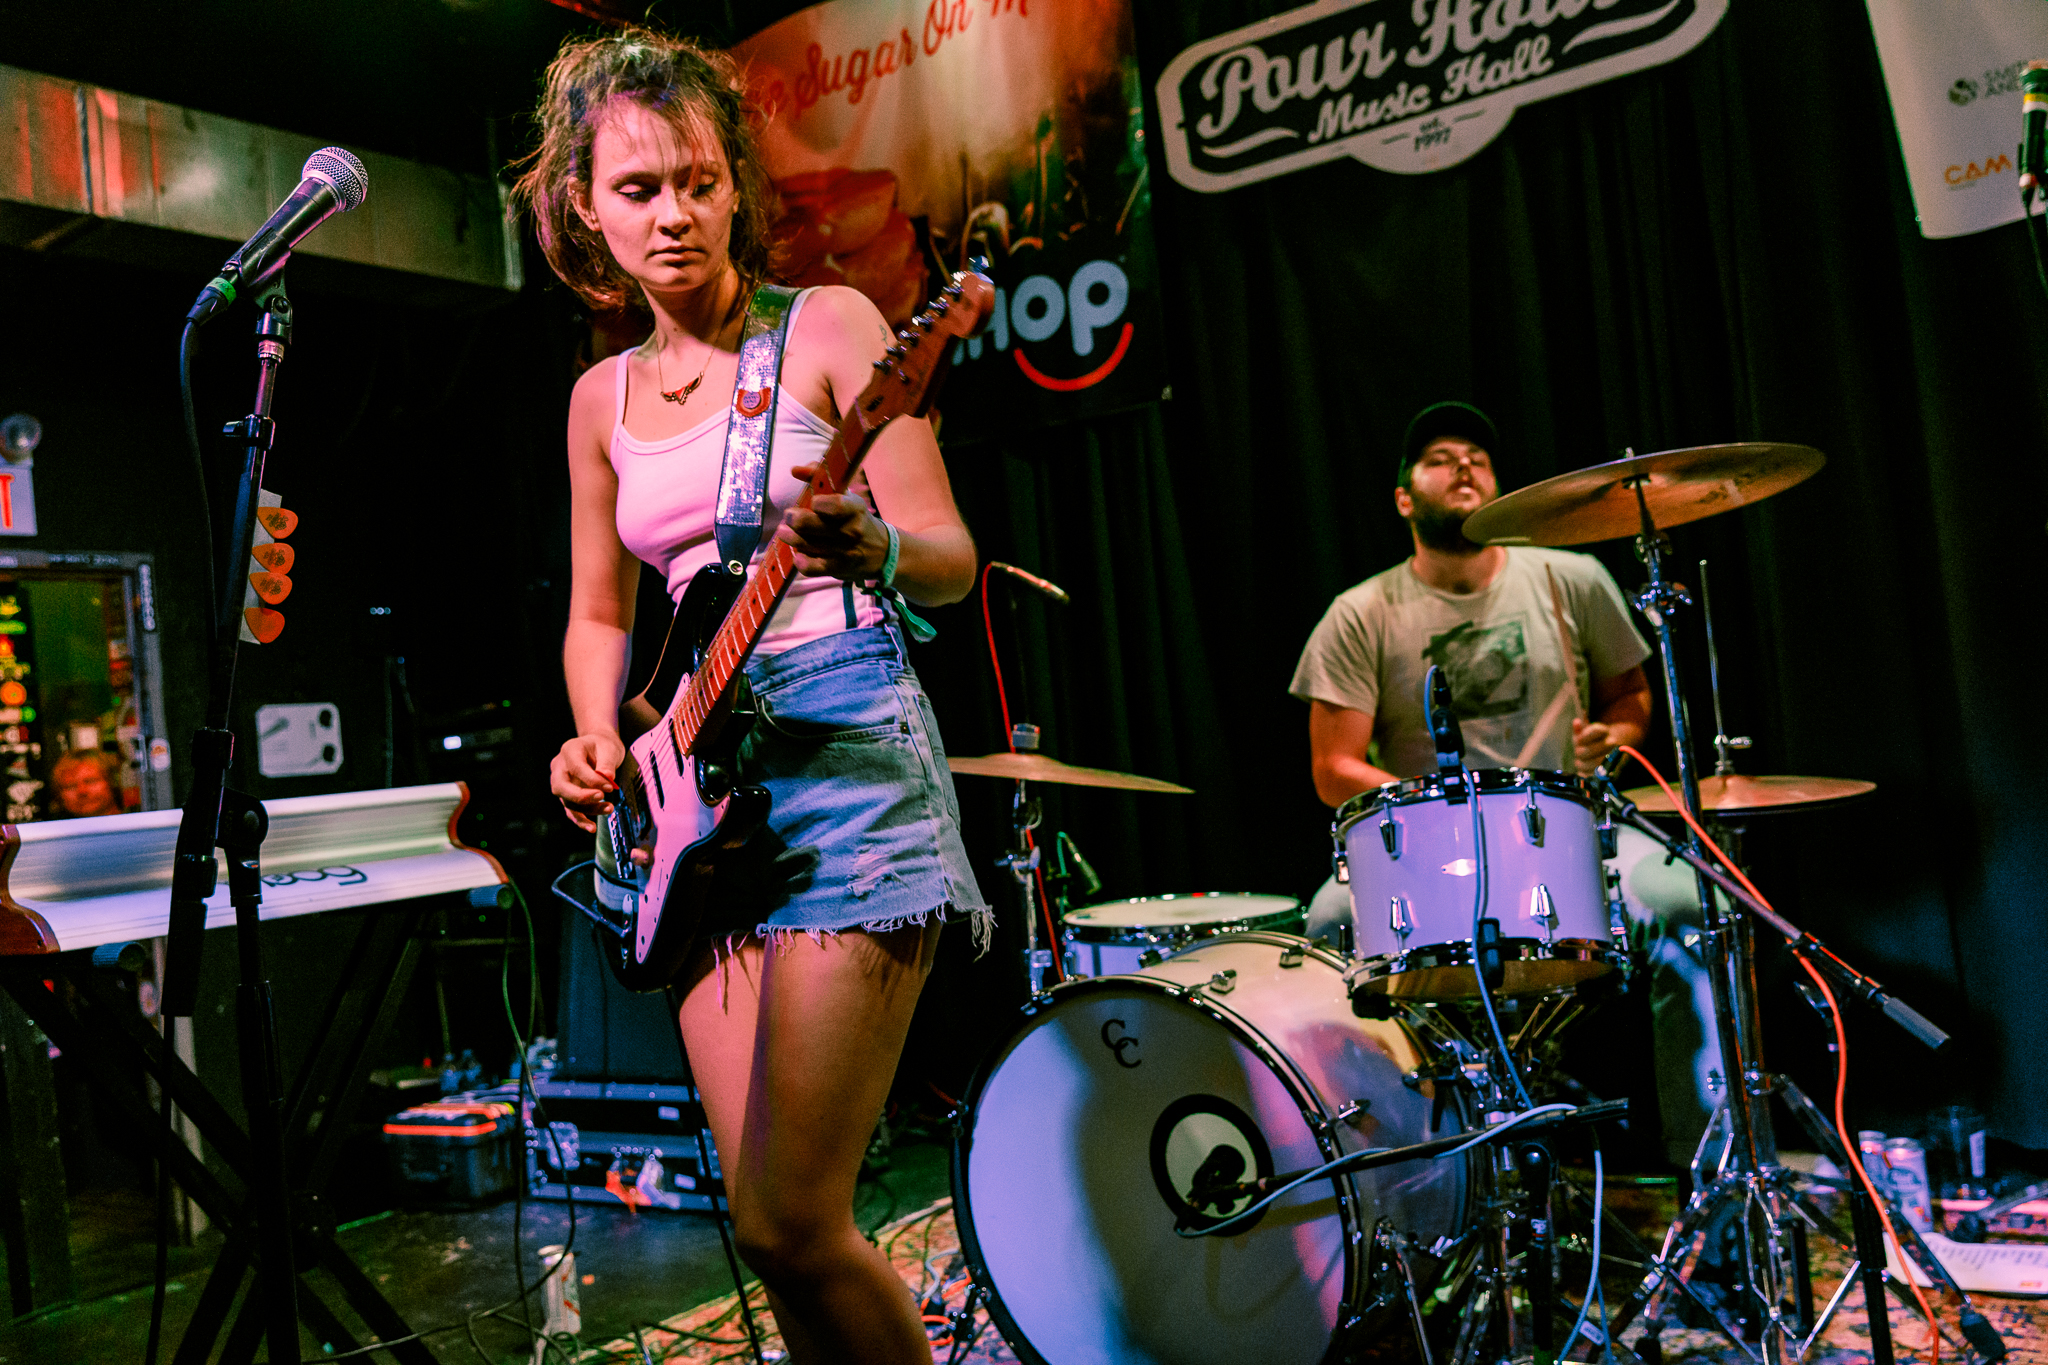 Cherry Glazerr performing at Hopscotch Music Festival 2017 in Raleigh, NC - 9/9/2017 (photo by Matt Condon / @arcane93)